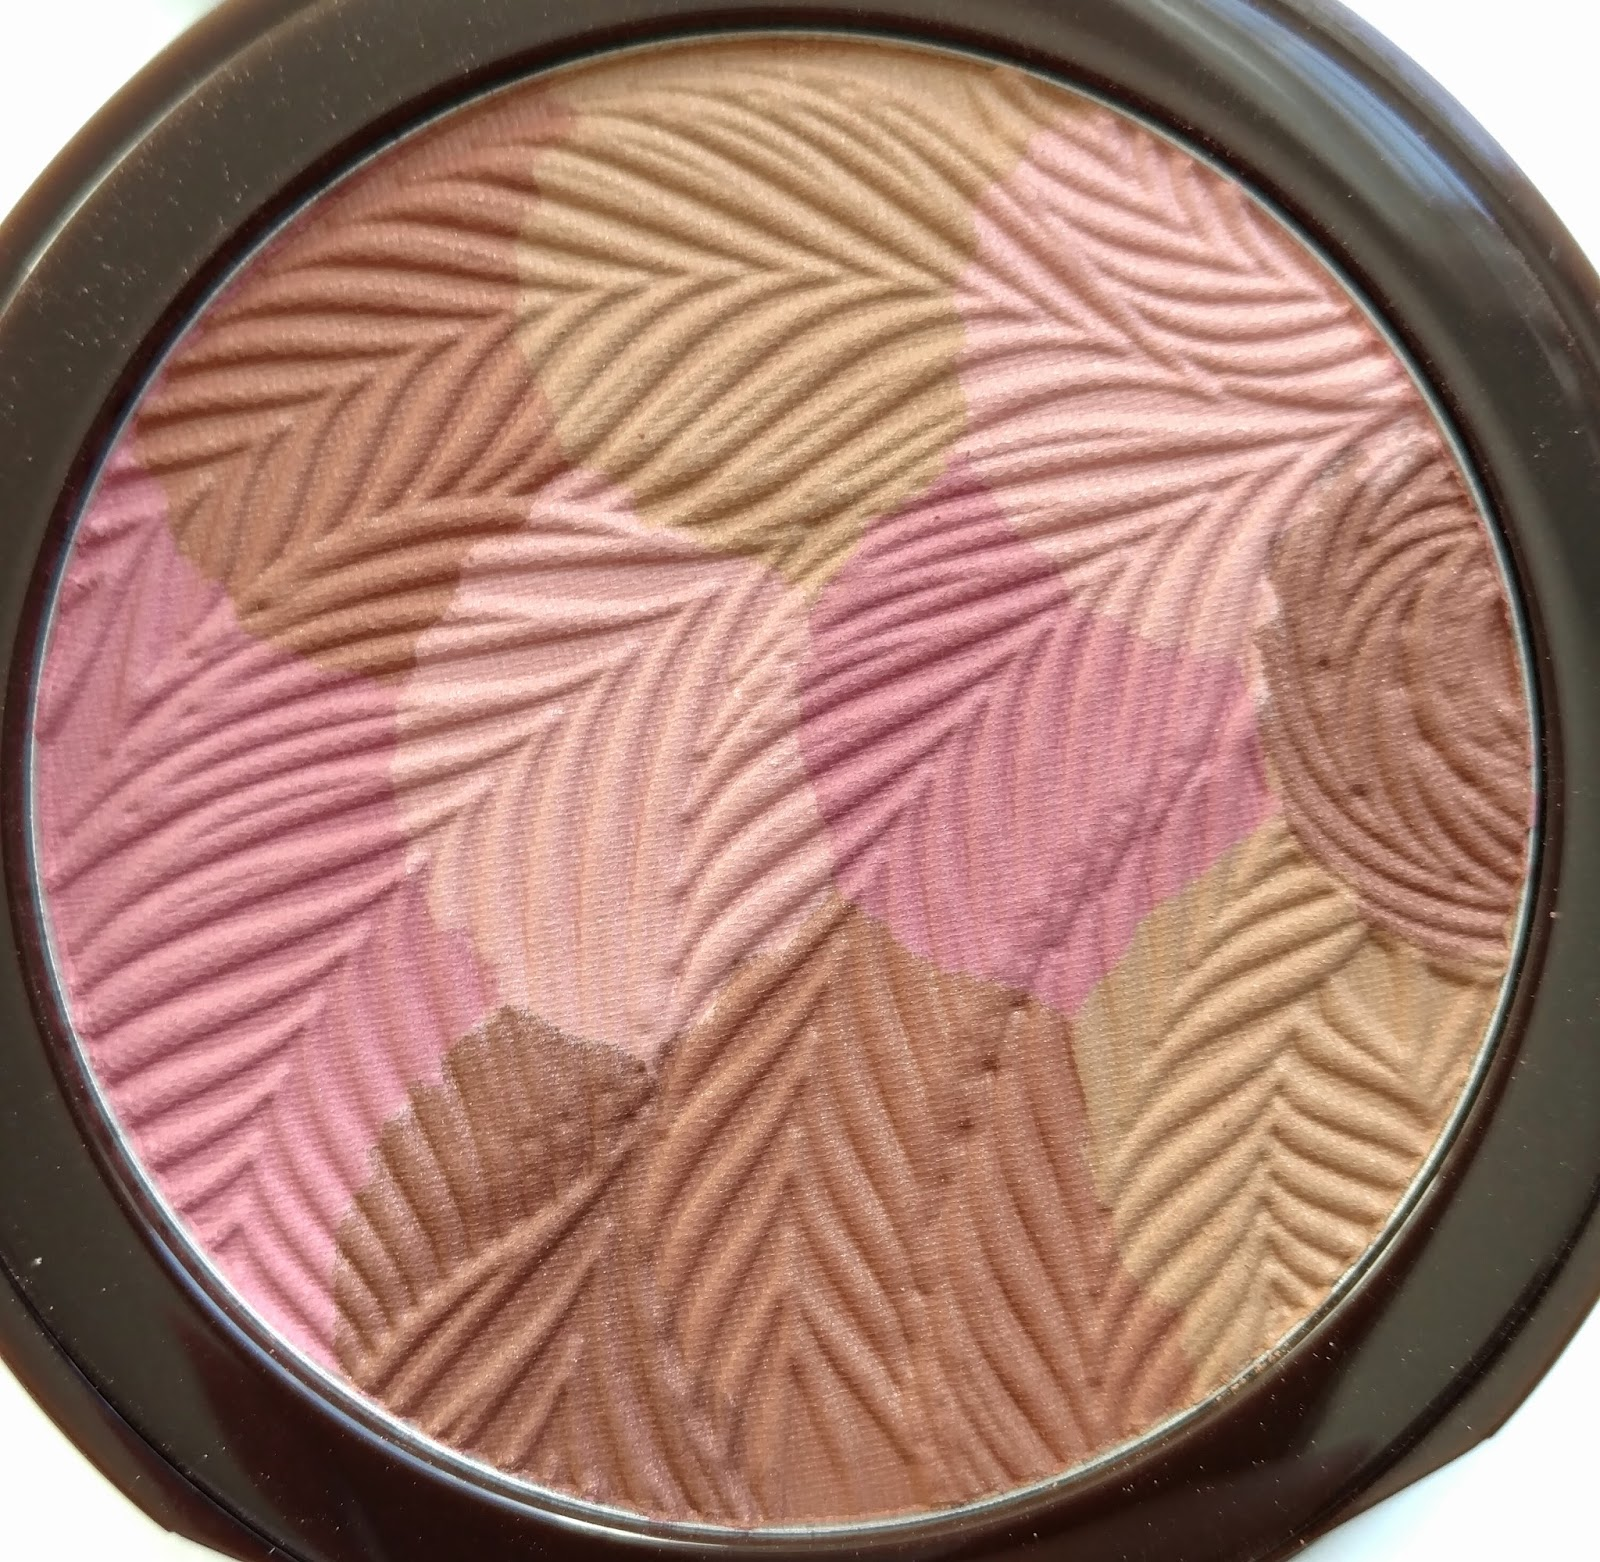 Tarte Colored Clay Bronzer Blush   Review & Swatches   The Budget ...